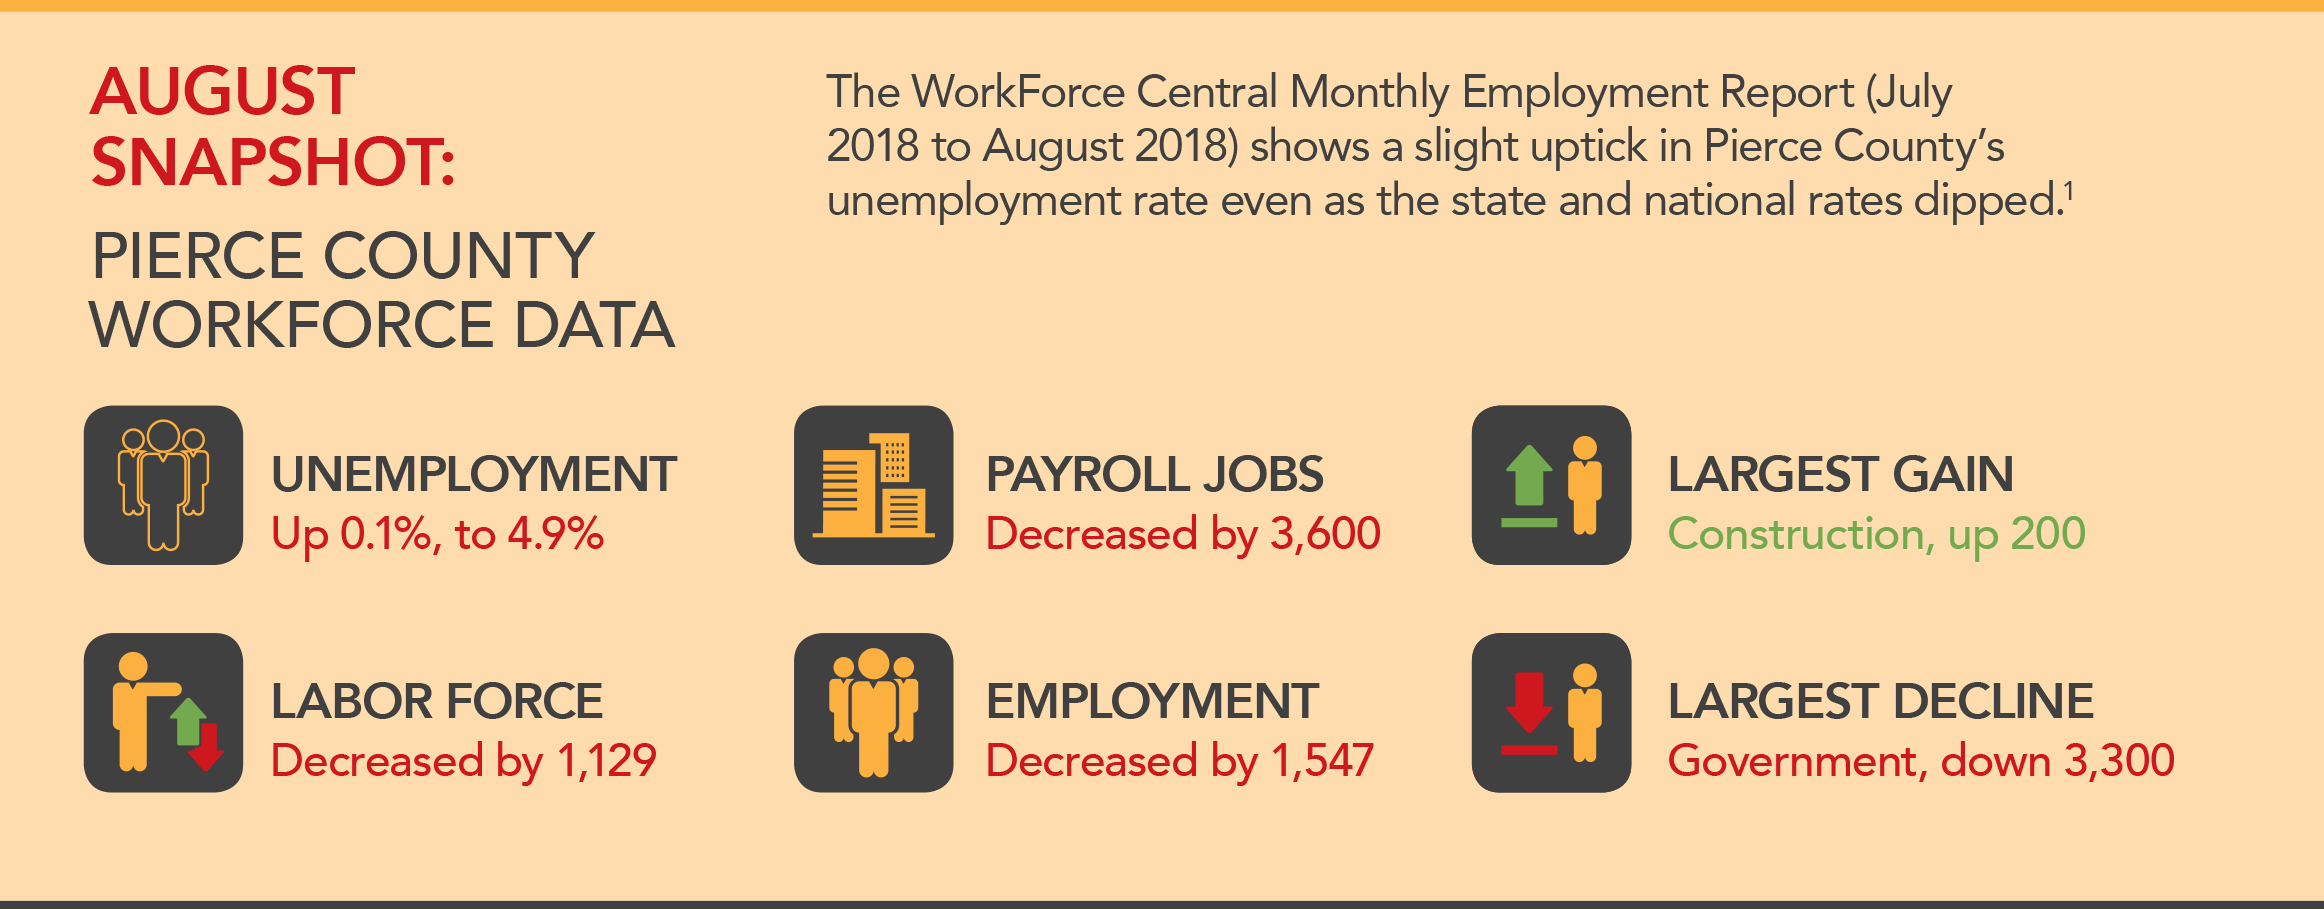 Monthly Employment Report August 2018